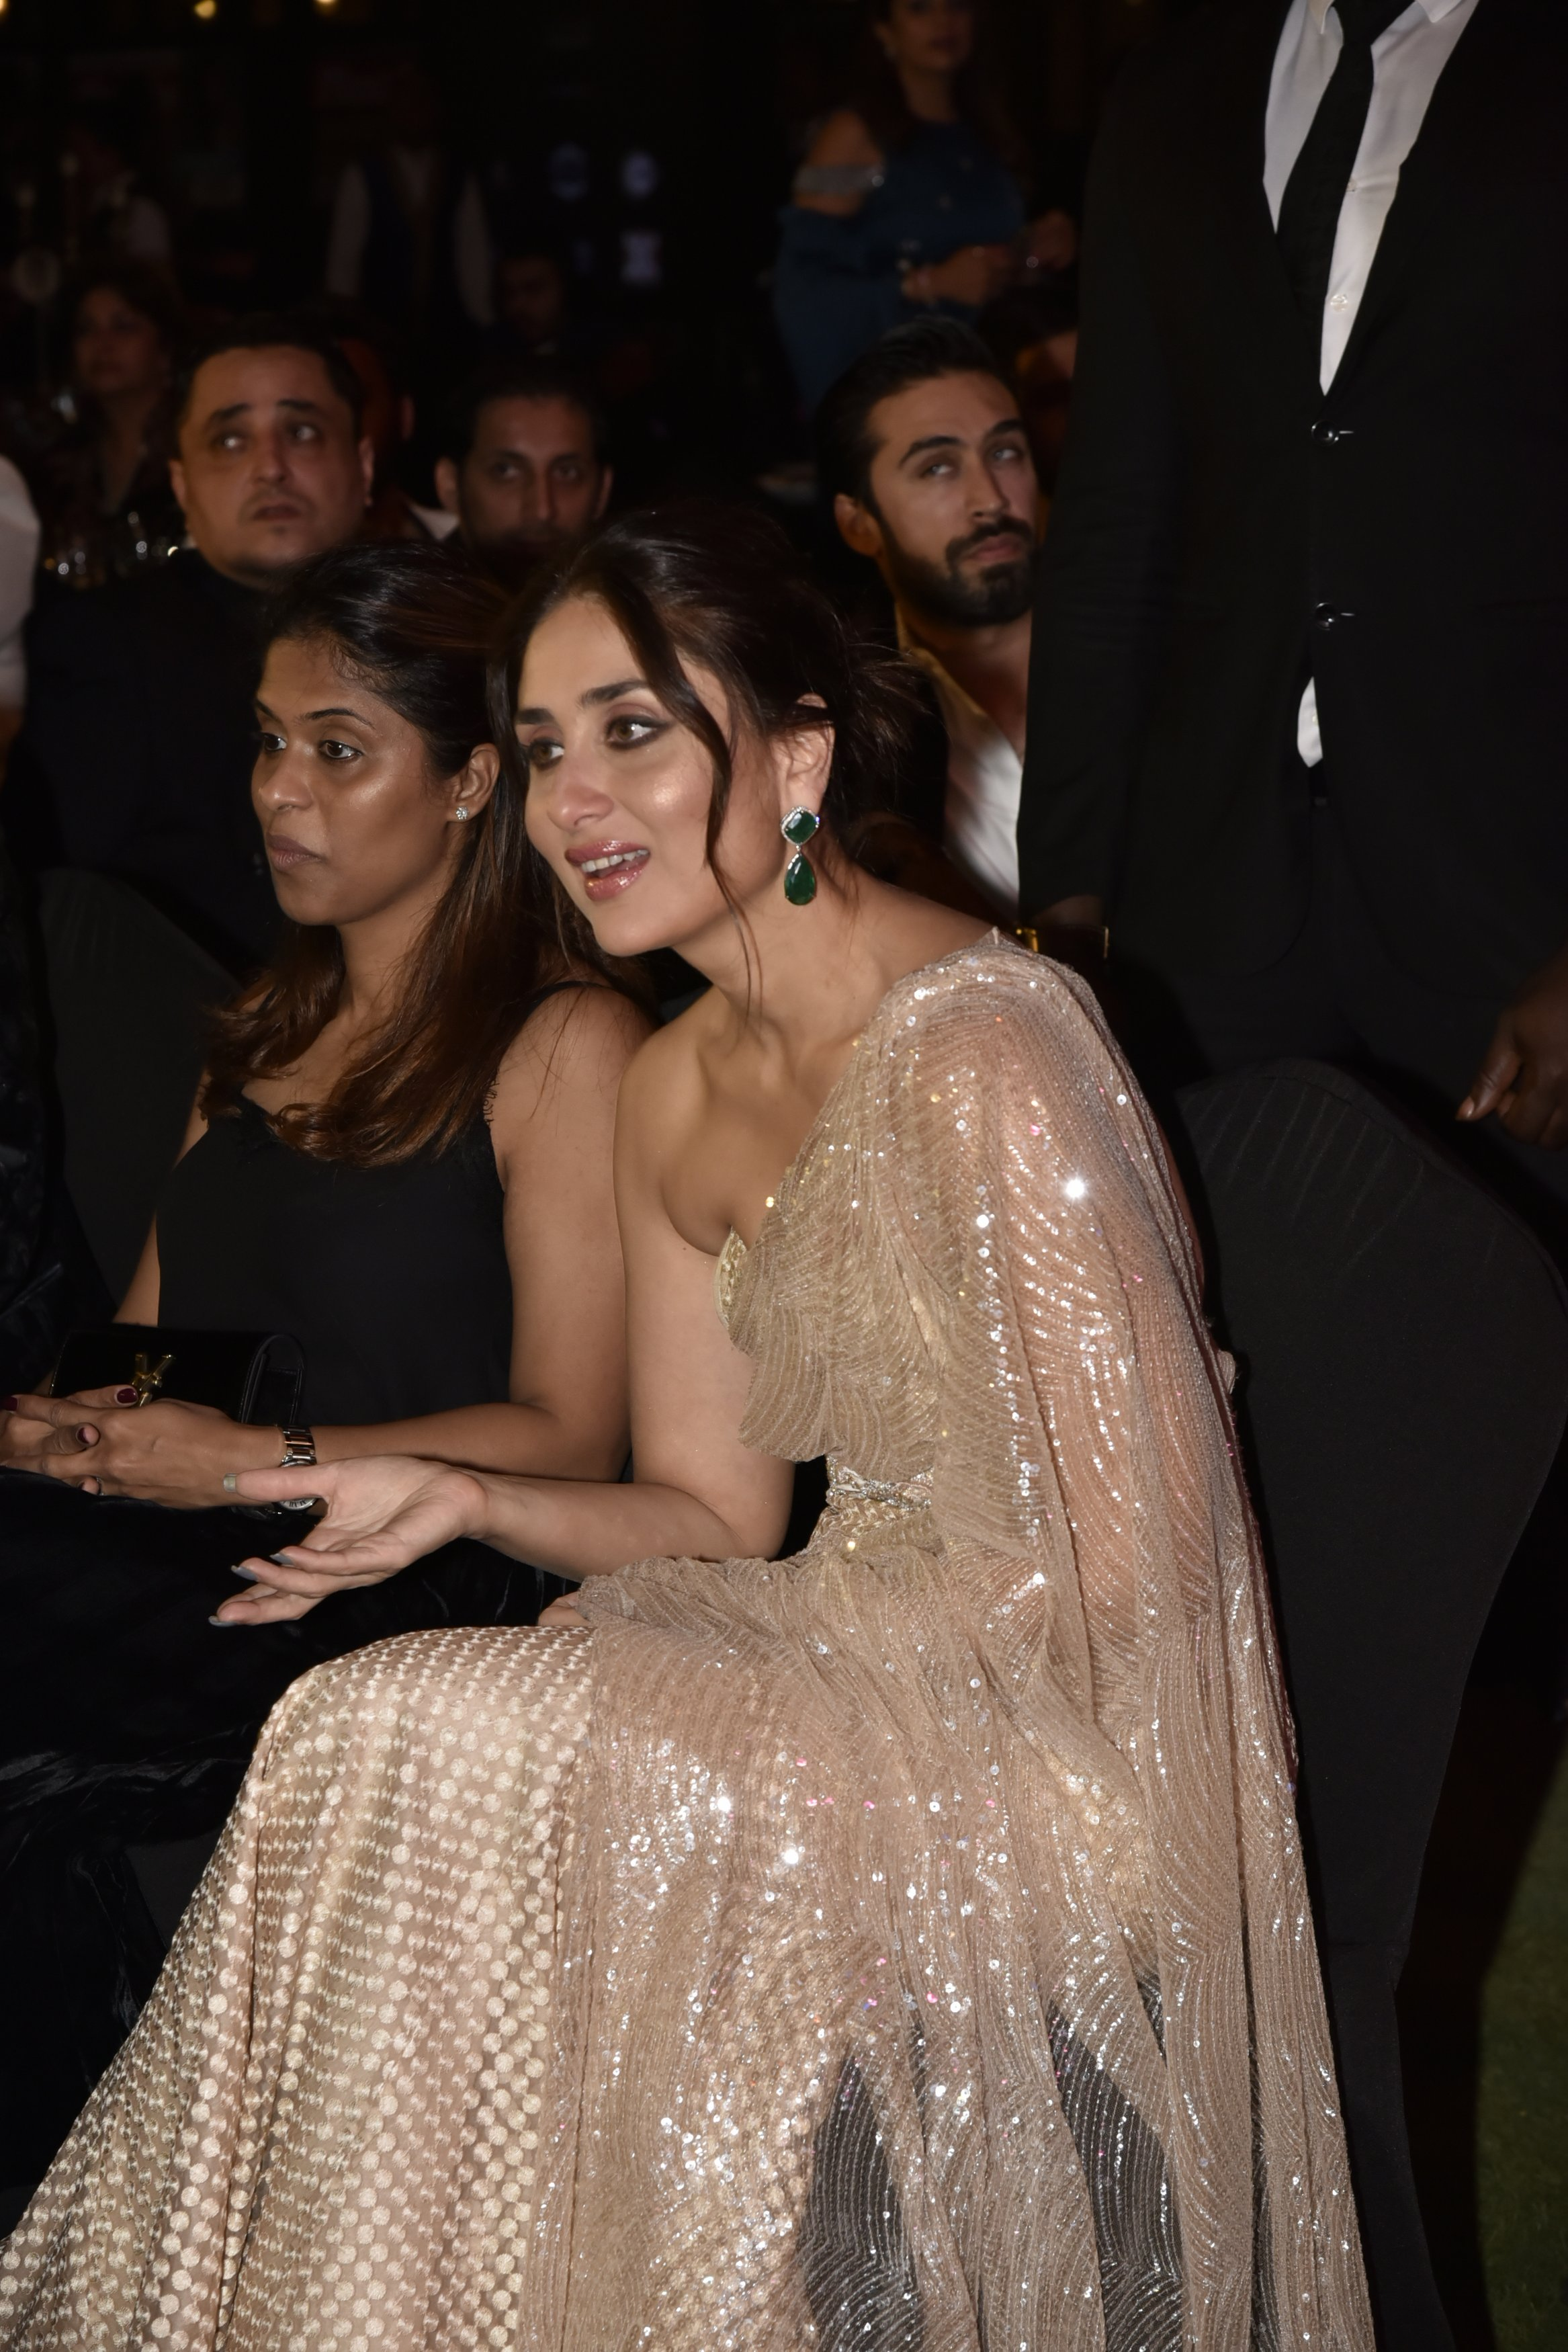 Masala! Awards 2018: Candid Moments From The Biggest Night In Dubai